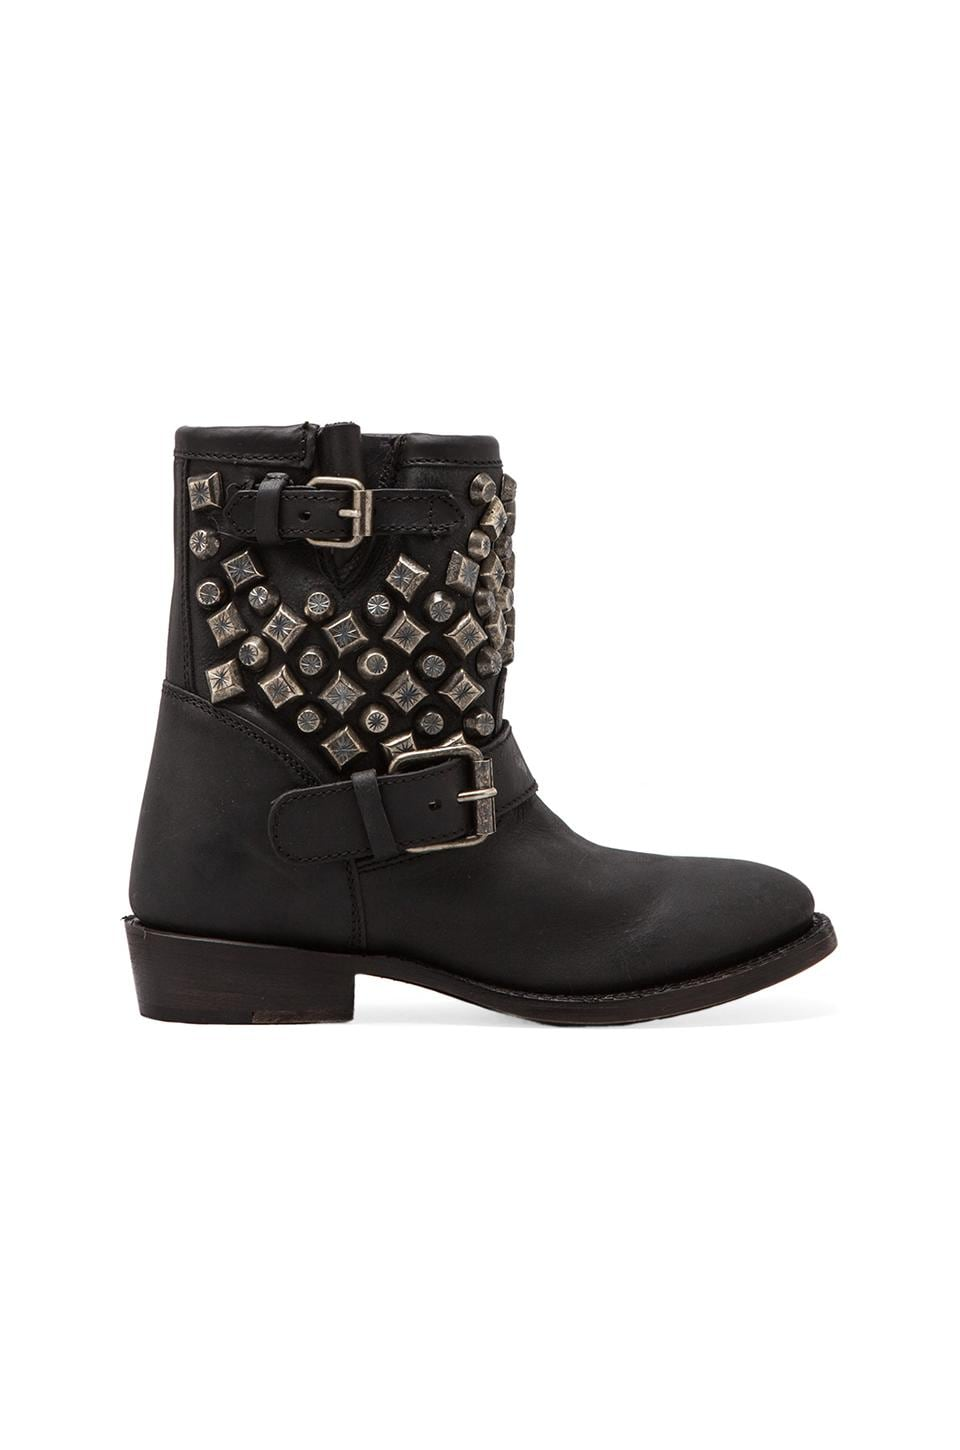 Ash Venin Studded Boot in Black/Nickel